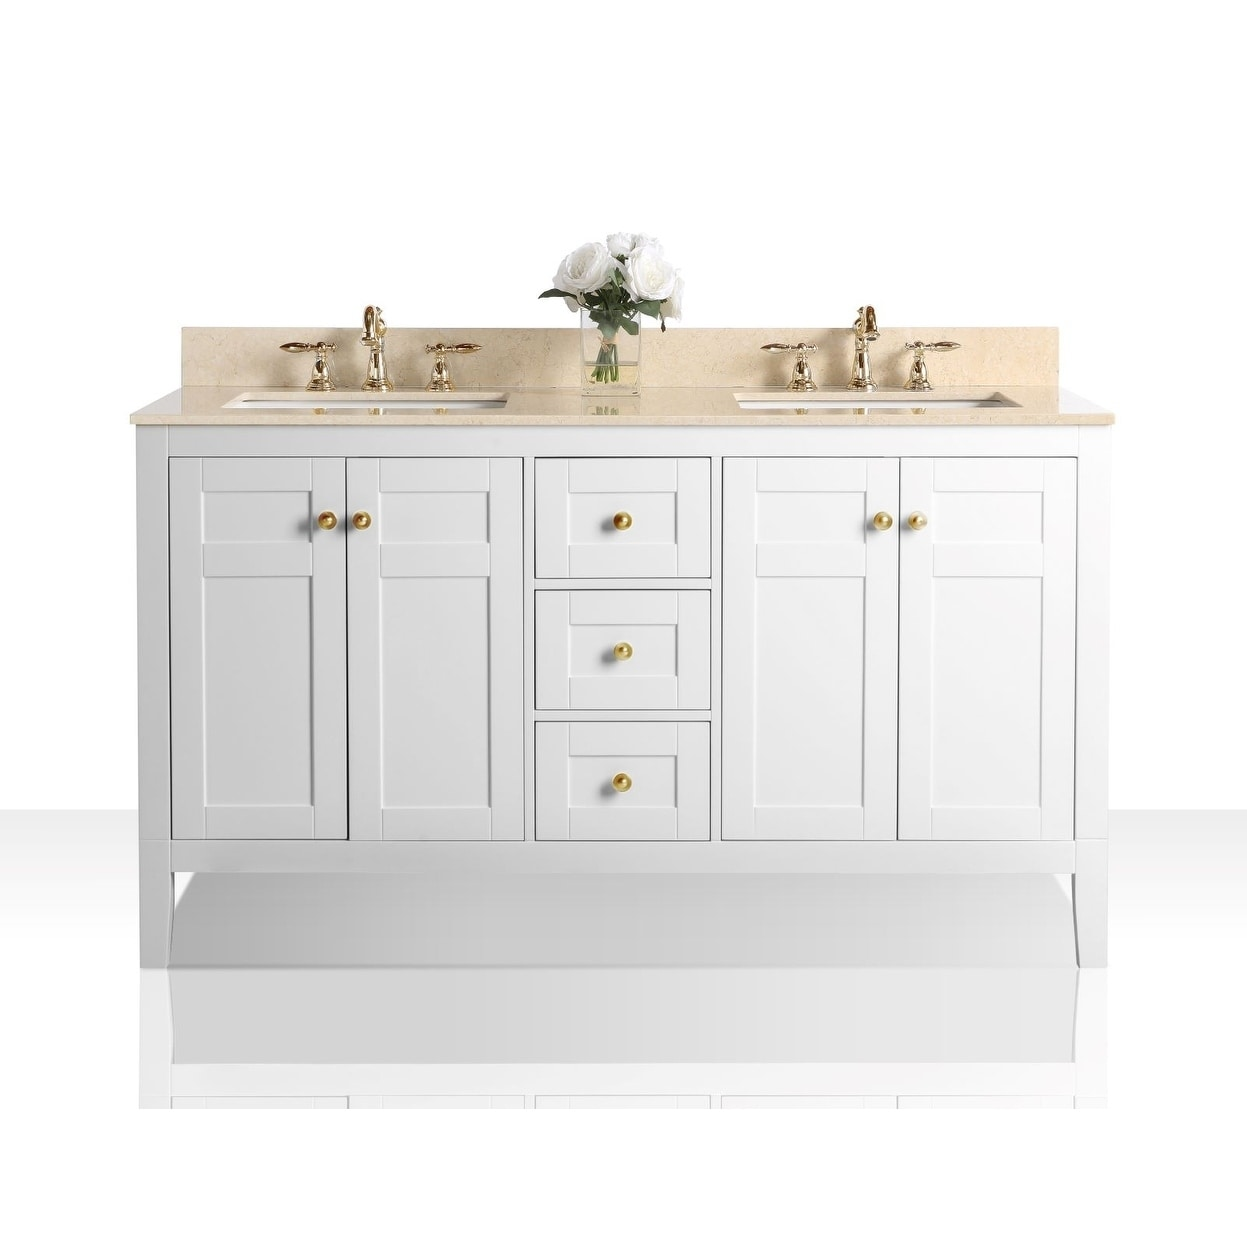 Ancerre Designs Maili White Wood 60 Inch Vanity With Galala Beige Marble Top And Gold Finish Hardware Overstock 23140713